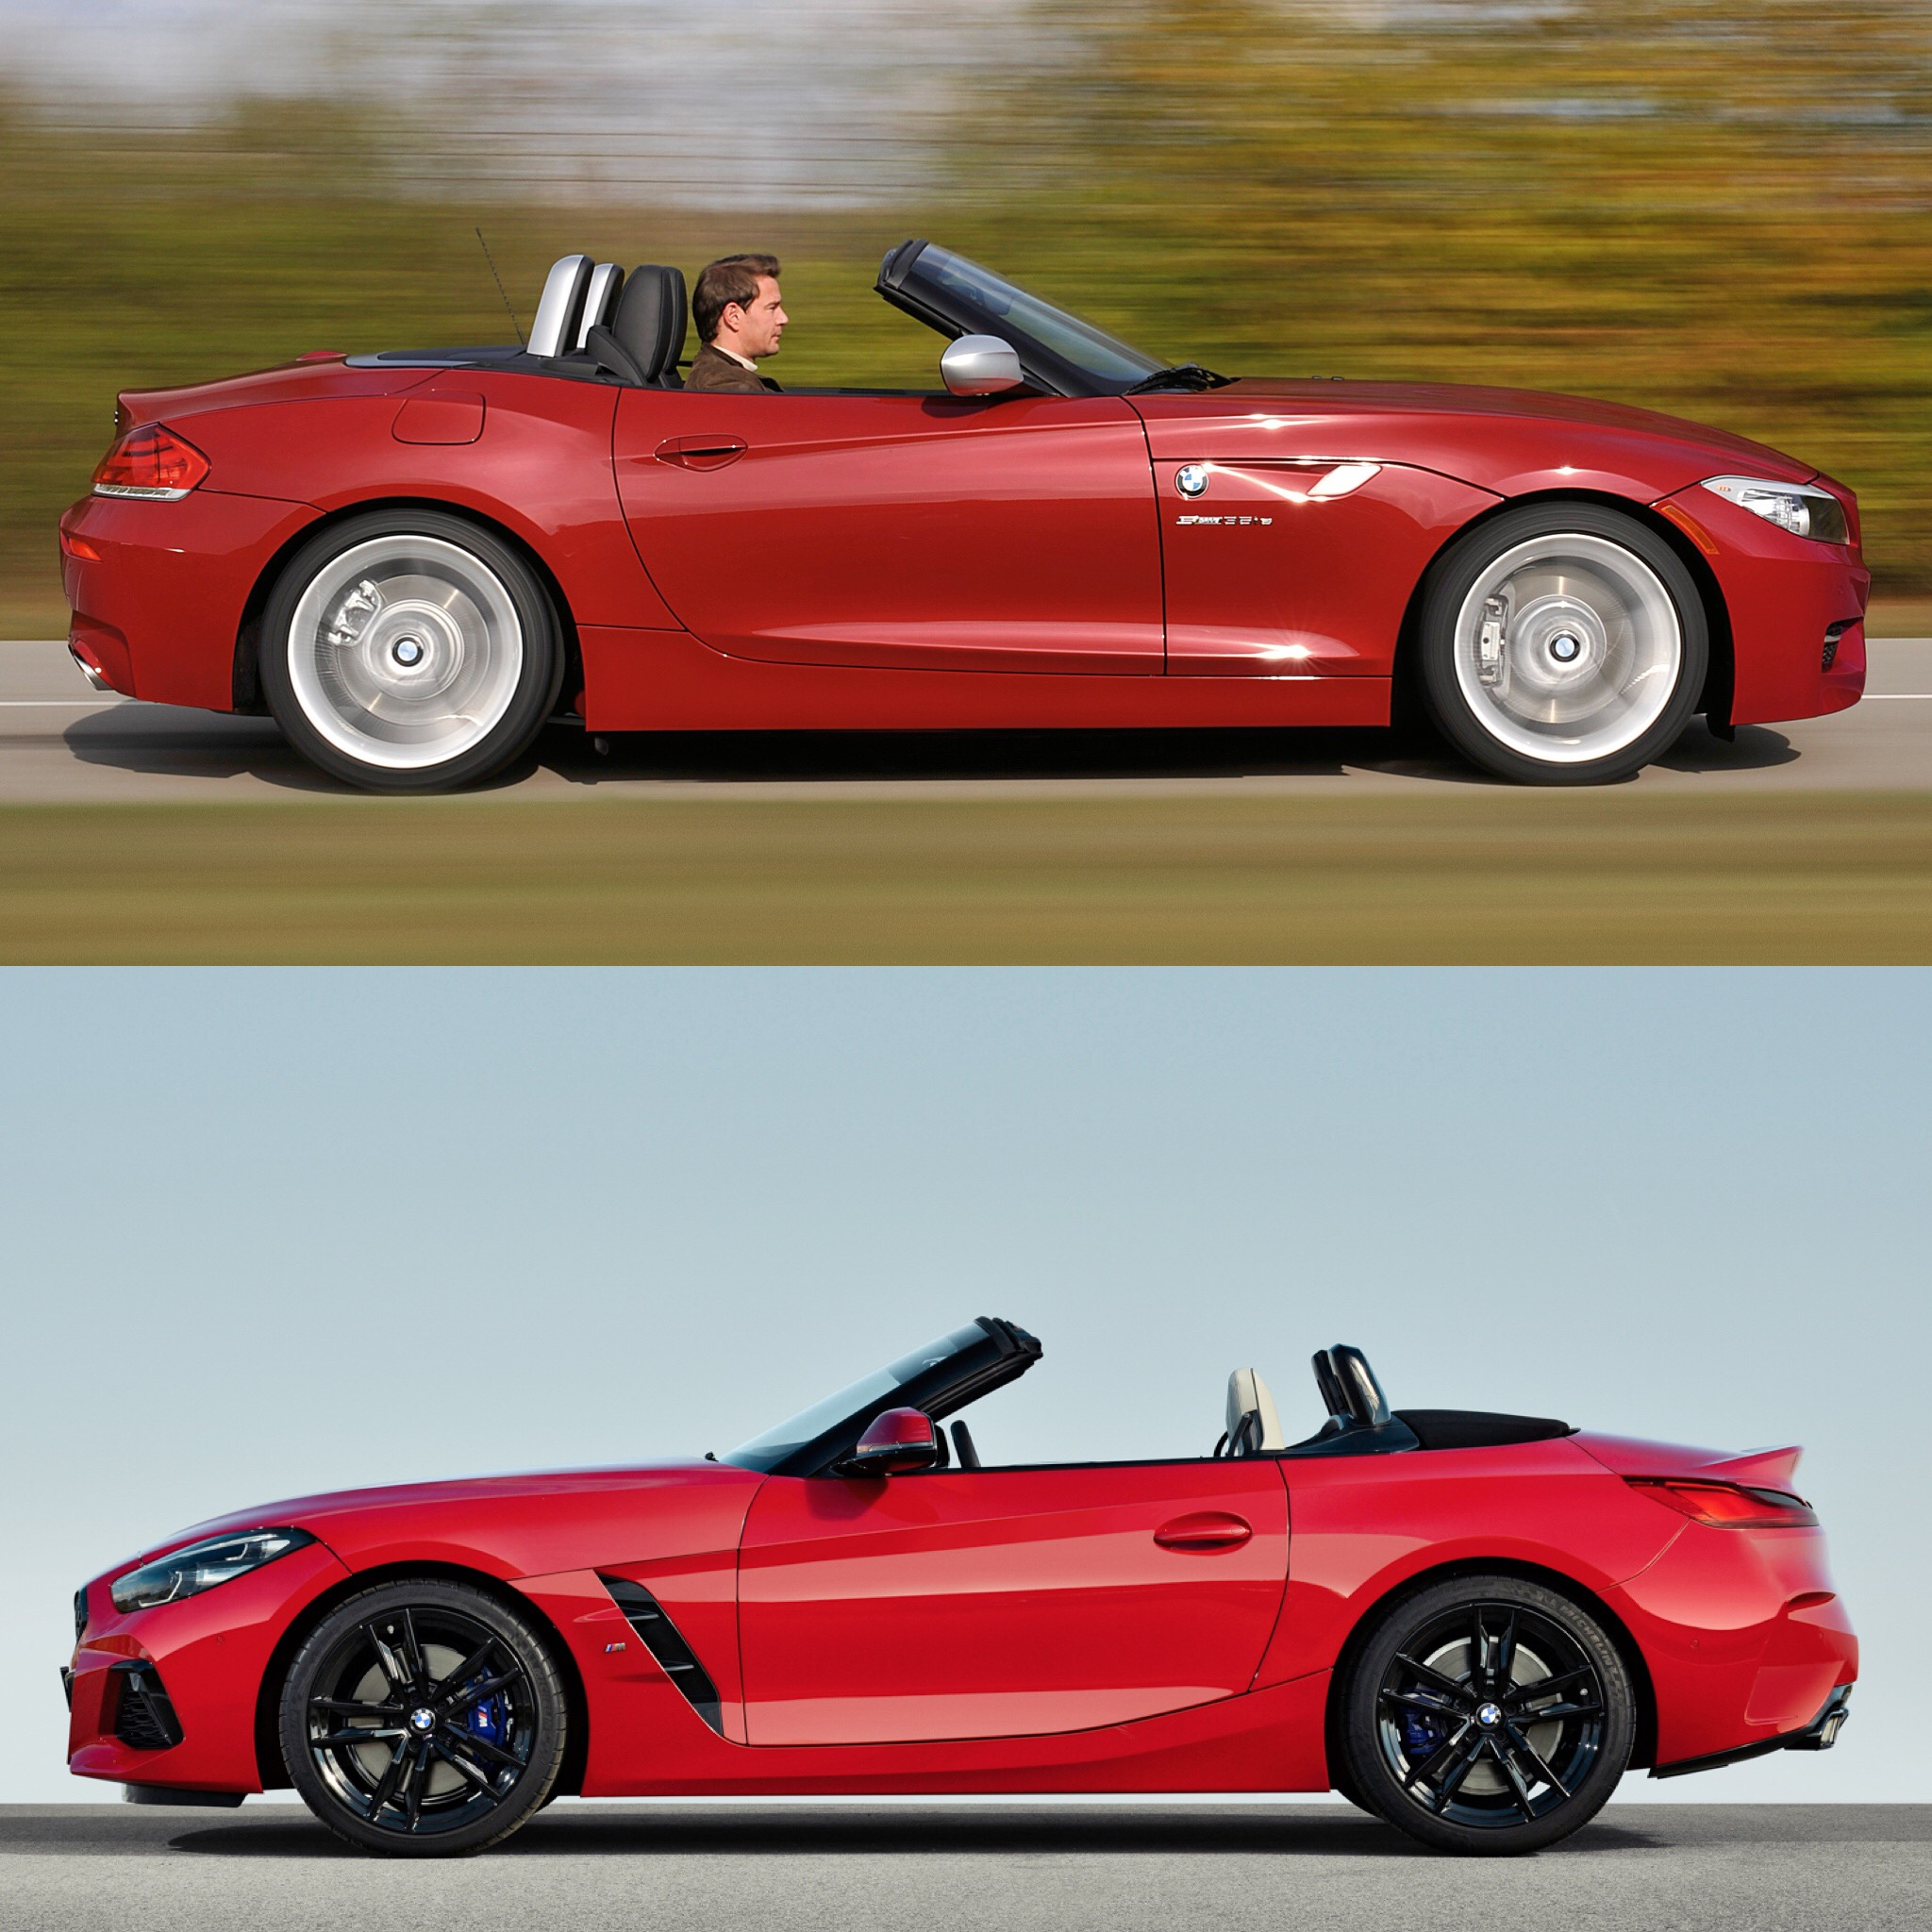 2016 Bmw Z4 Convertible: Photo Comparison: G29 BMW Z4 Vs E89 BMW Z4